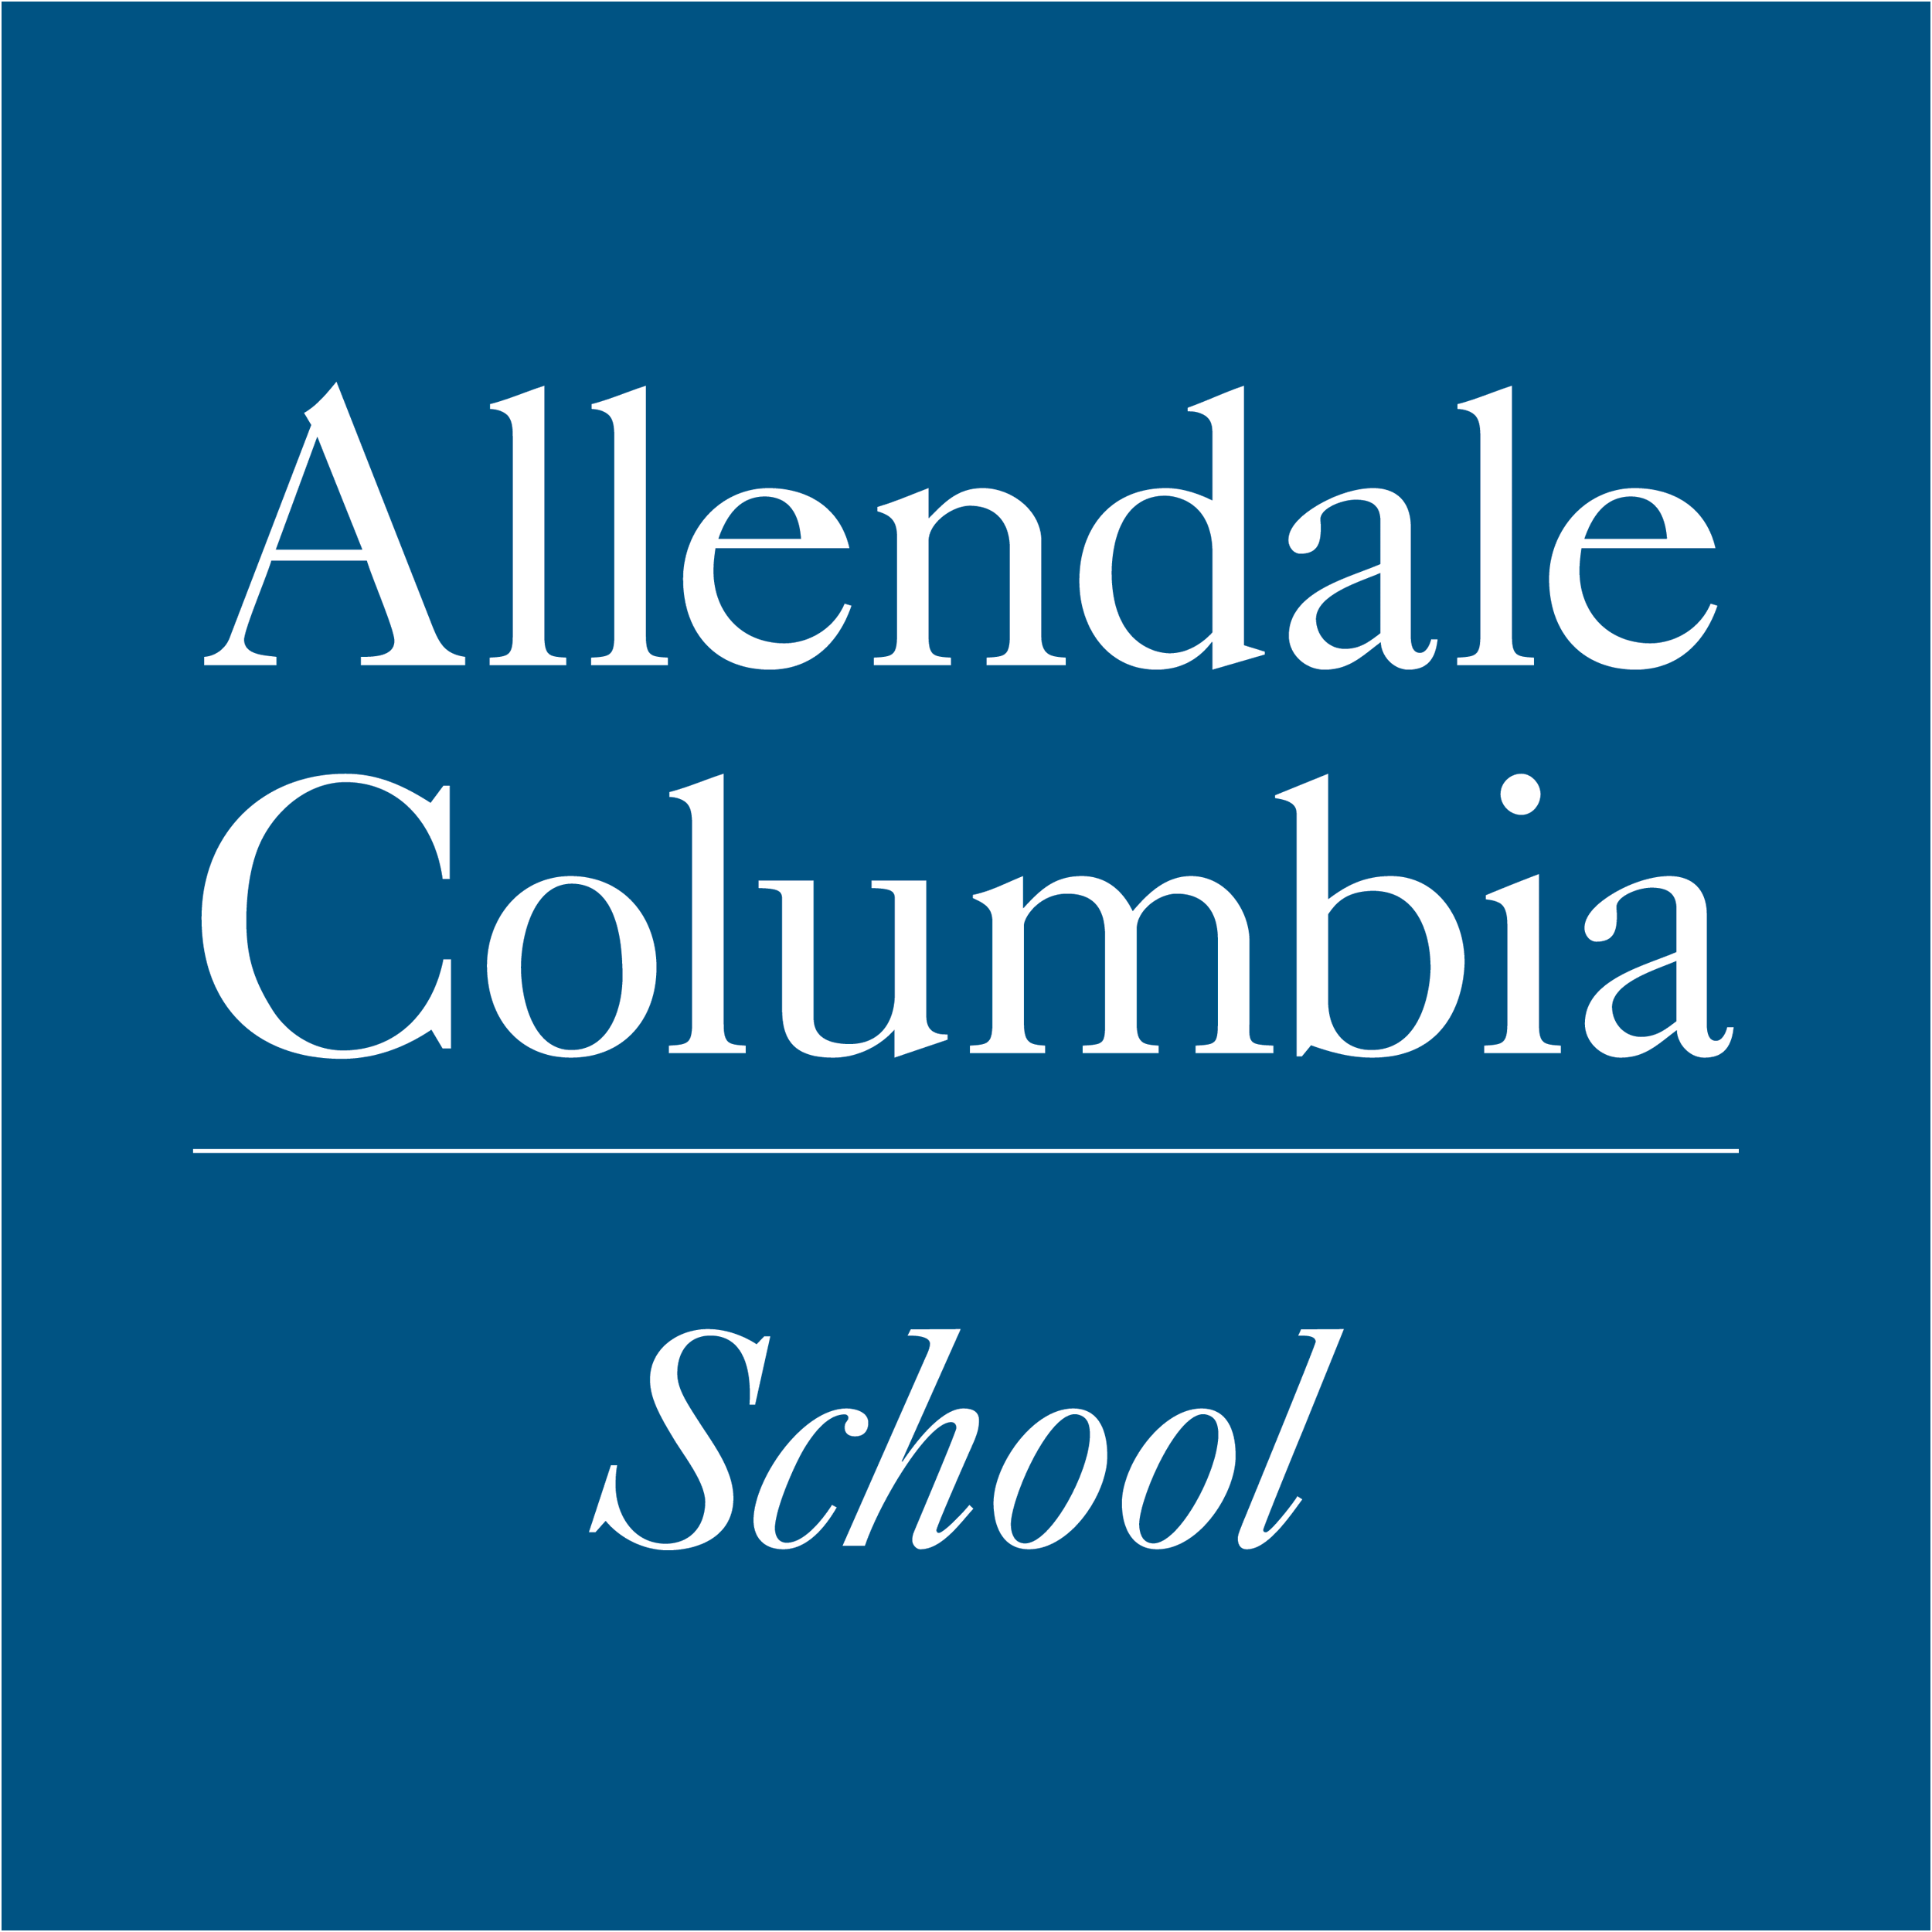 New York - Trường Trung Học Allendale Columbia School  - USA